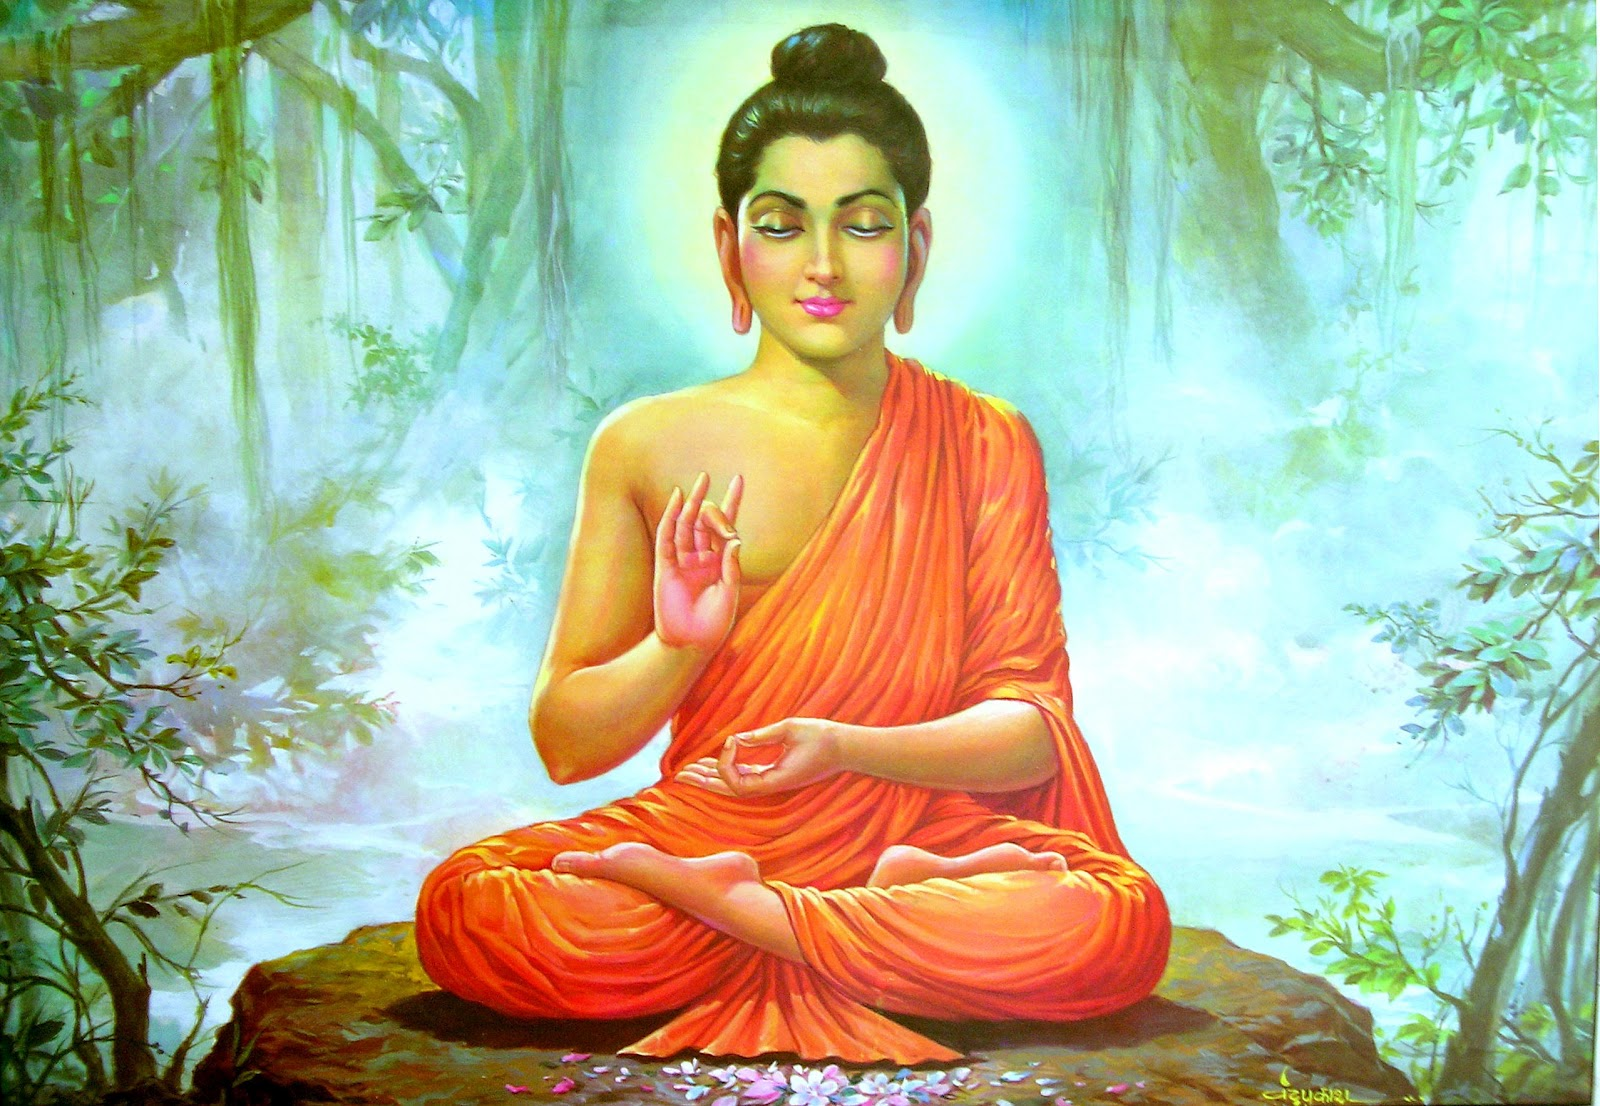 nirvana the enlightenment of the soul and a state of total peace and happiness The first thing i did was define enlightenment and nirvana  it is a total transformation  we experience in our unenlightened state enlightenment .